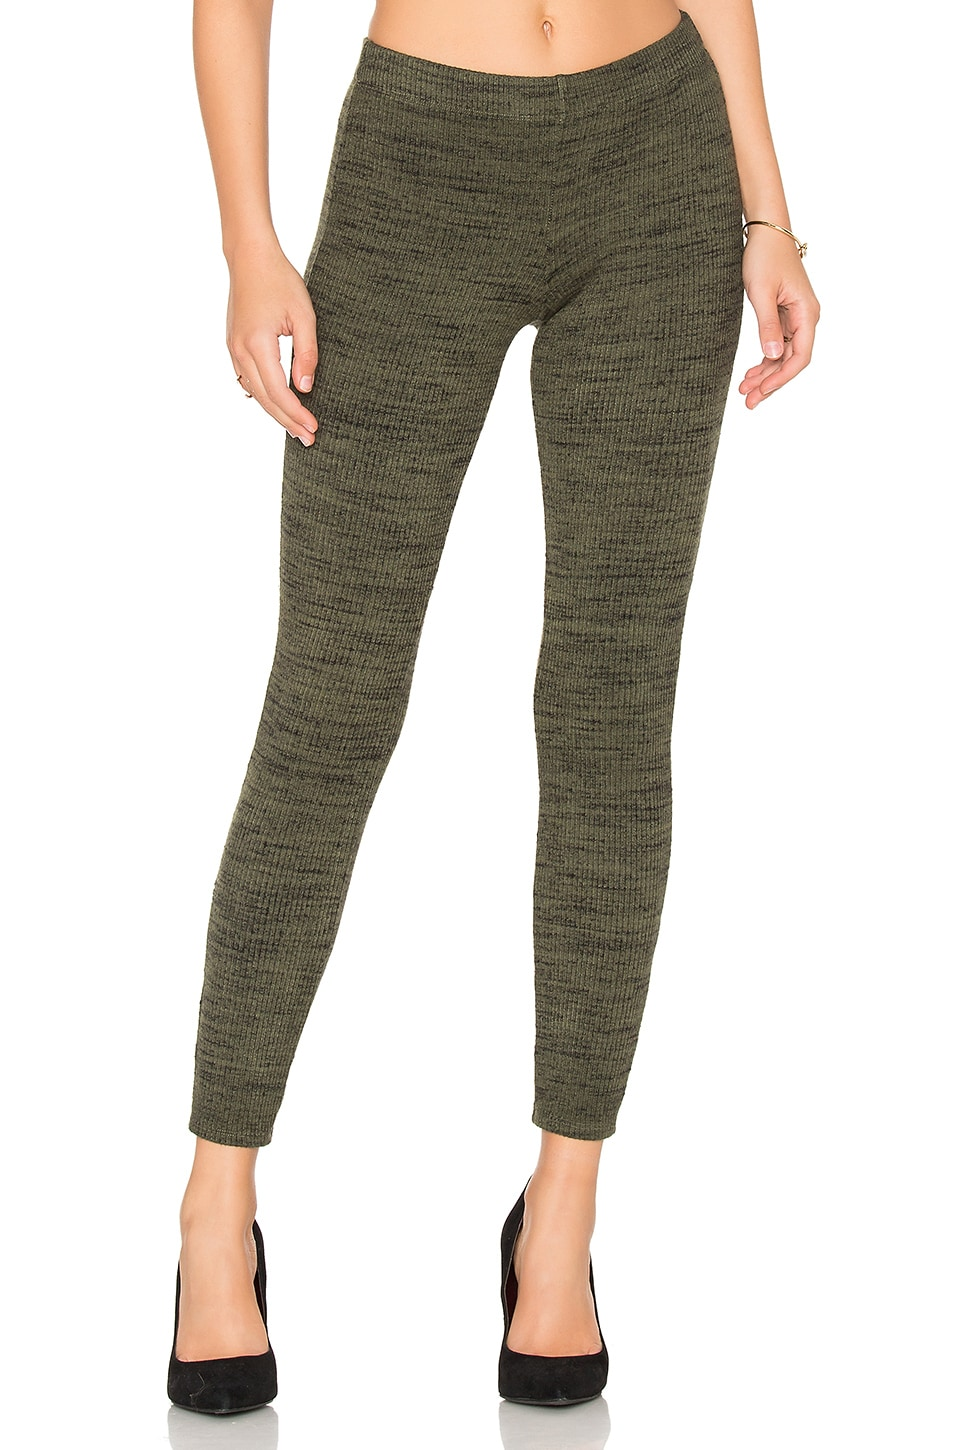 Splendid Brushed Tri-Blend Legging in Moss